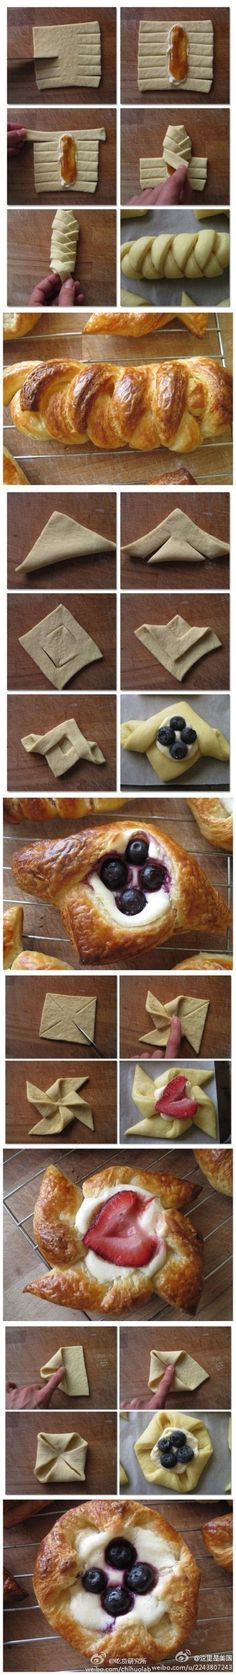 Pastry Folding Hacks | Community Post: 40 Creative Food Hacks That Will Change The Way You Cook